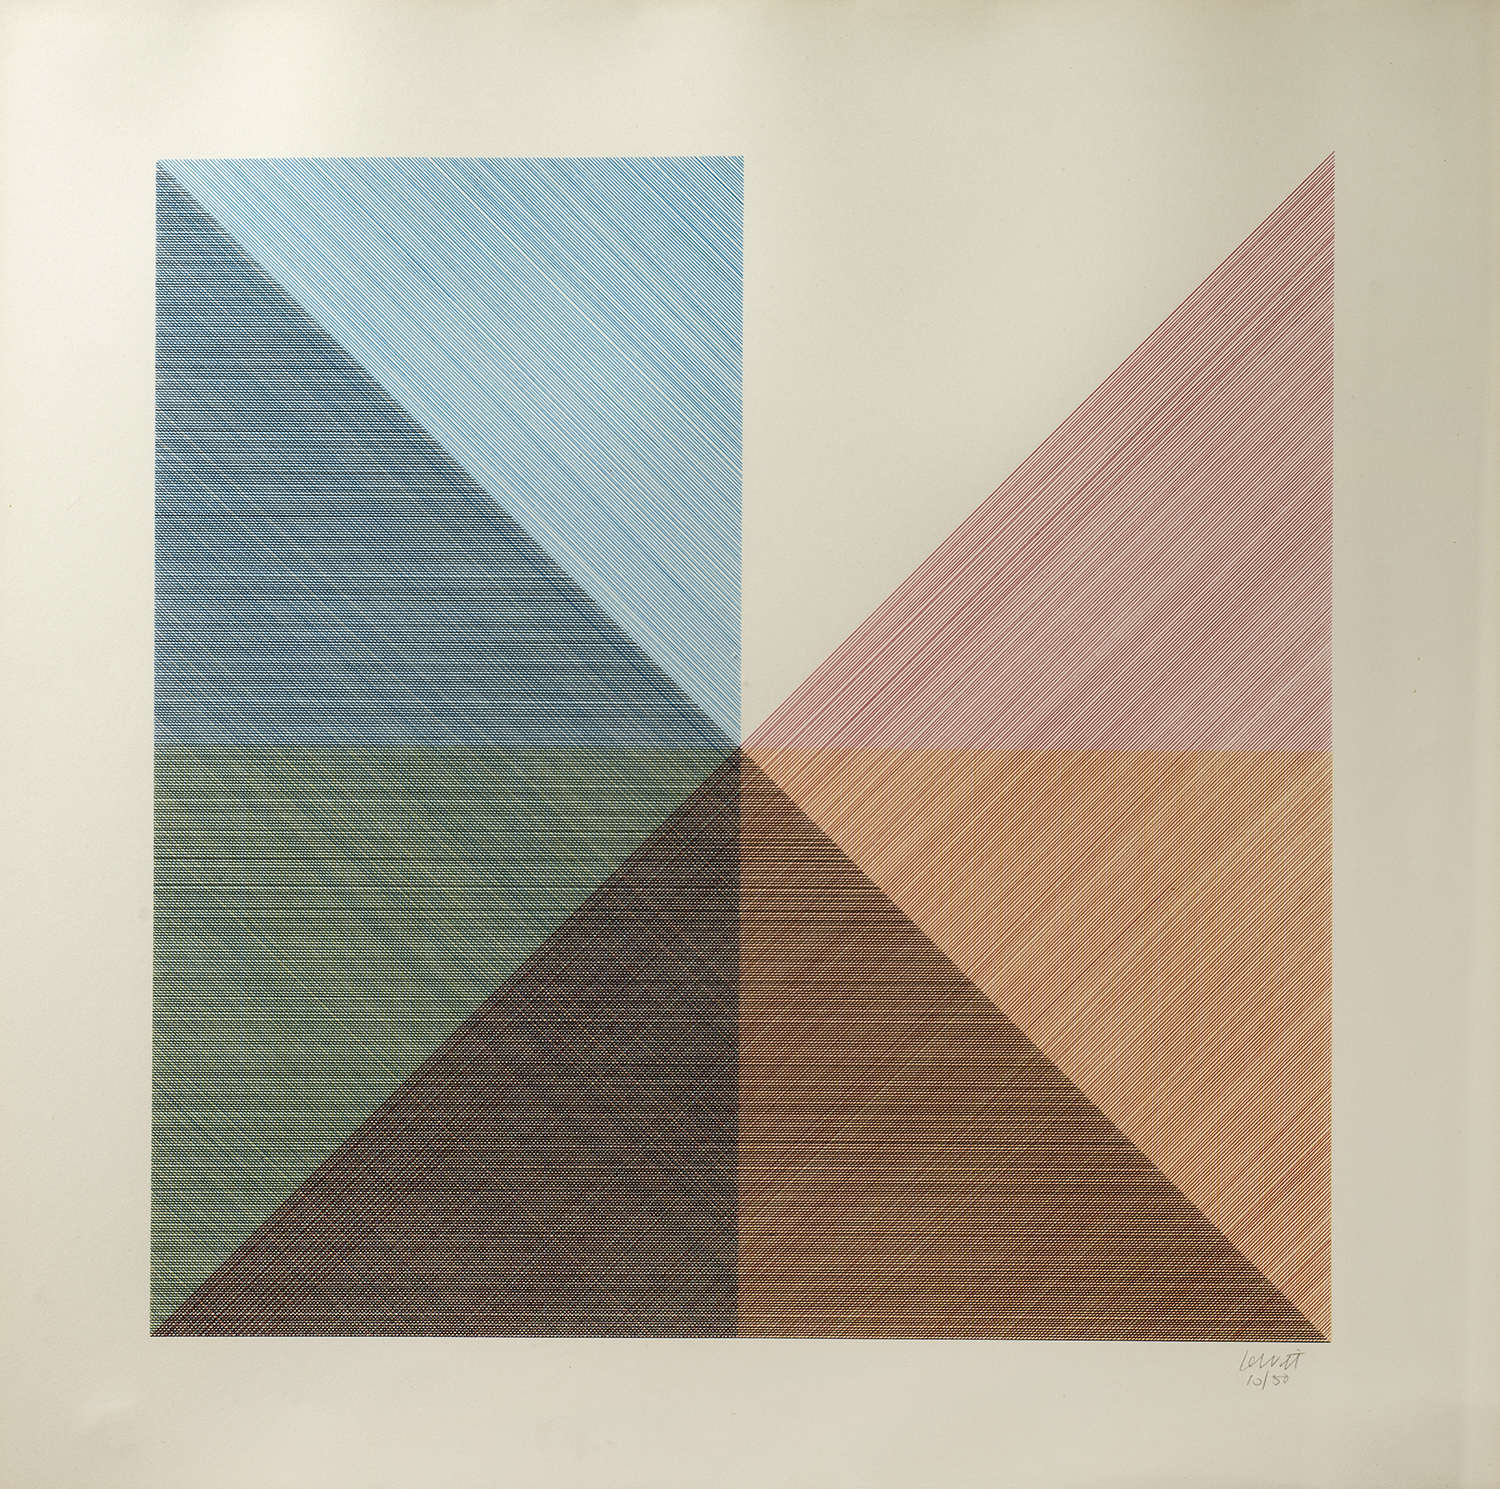 Eight Squares With A Different Color In Each Half Square (Divided Horizontally And Vertically), 1980